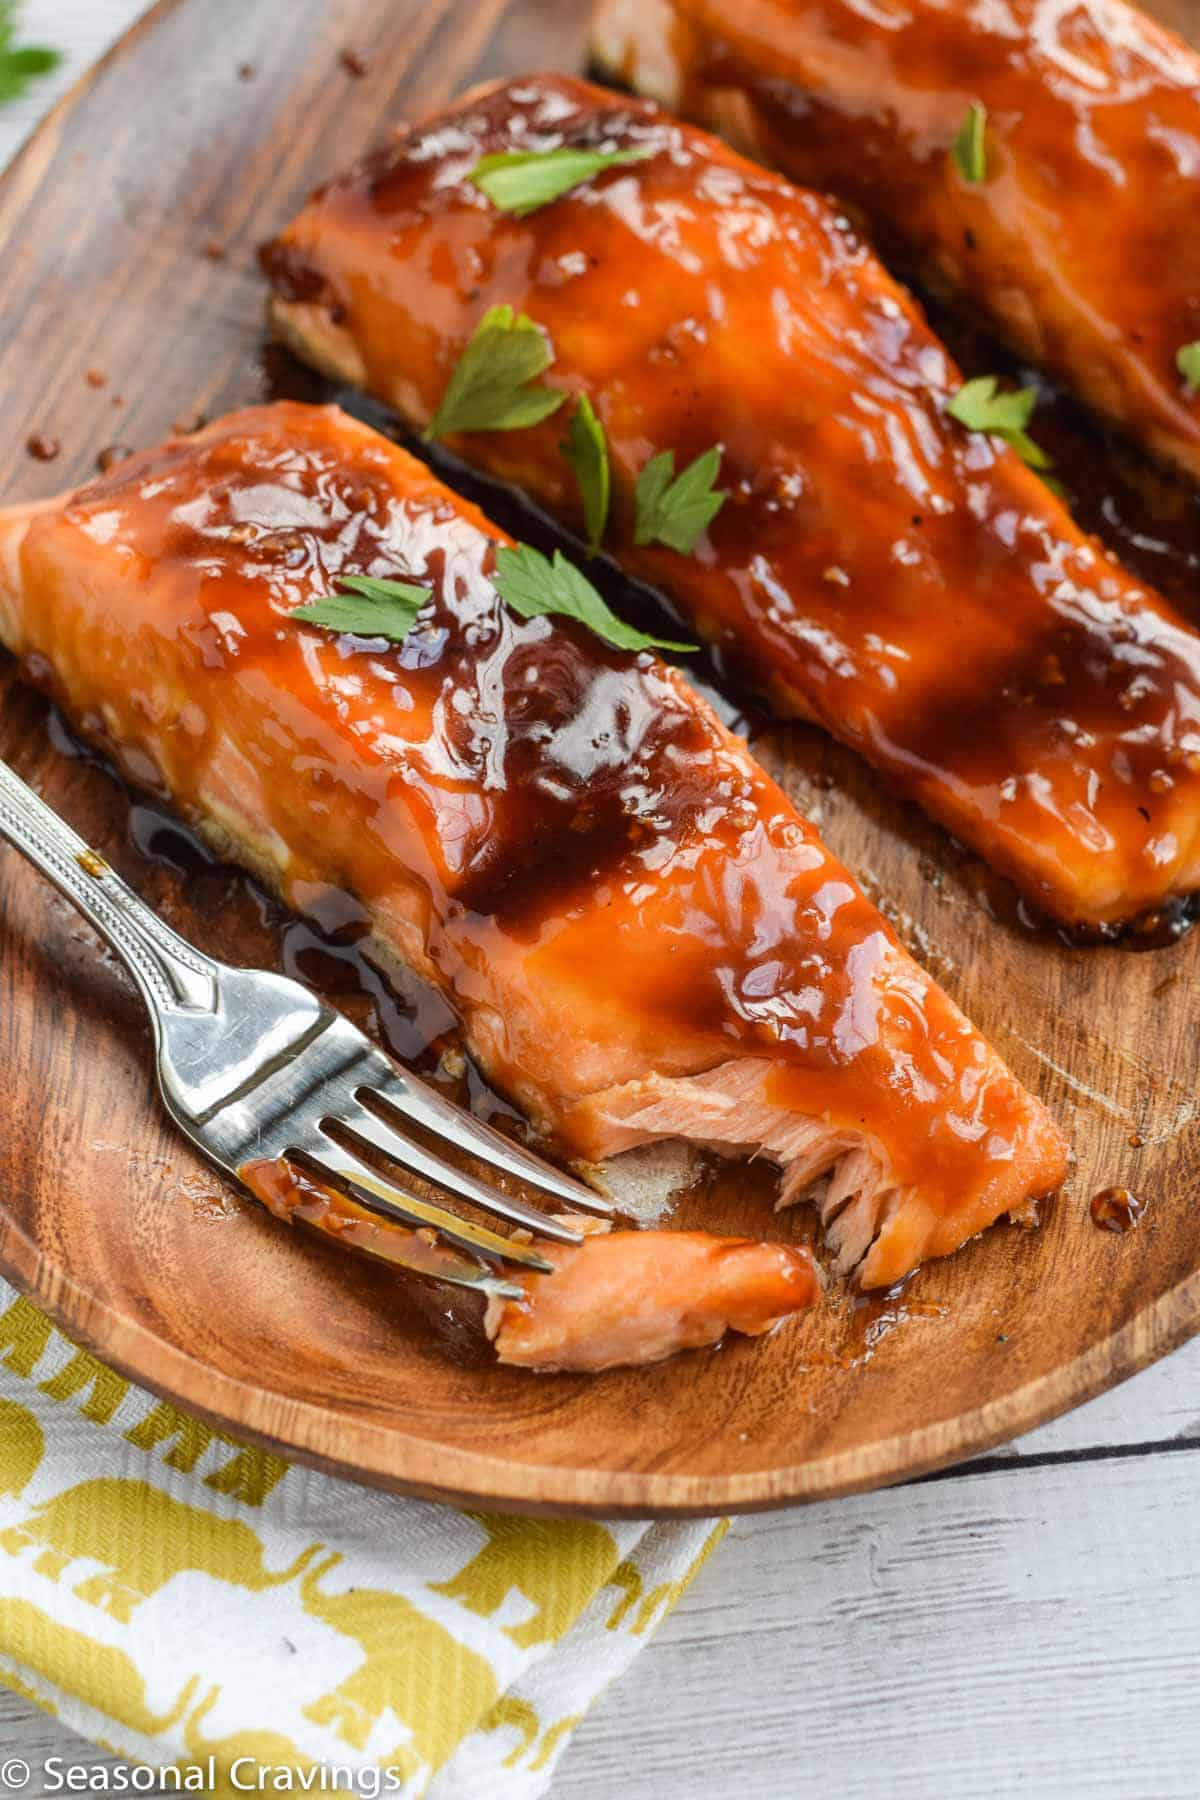 Baked teriyaki salmon recipe with glaze